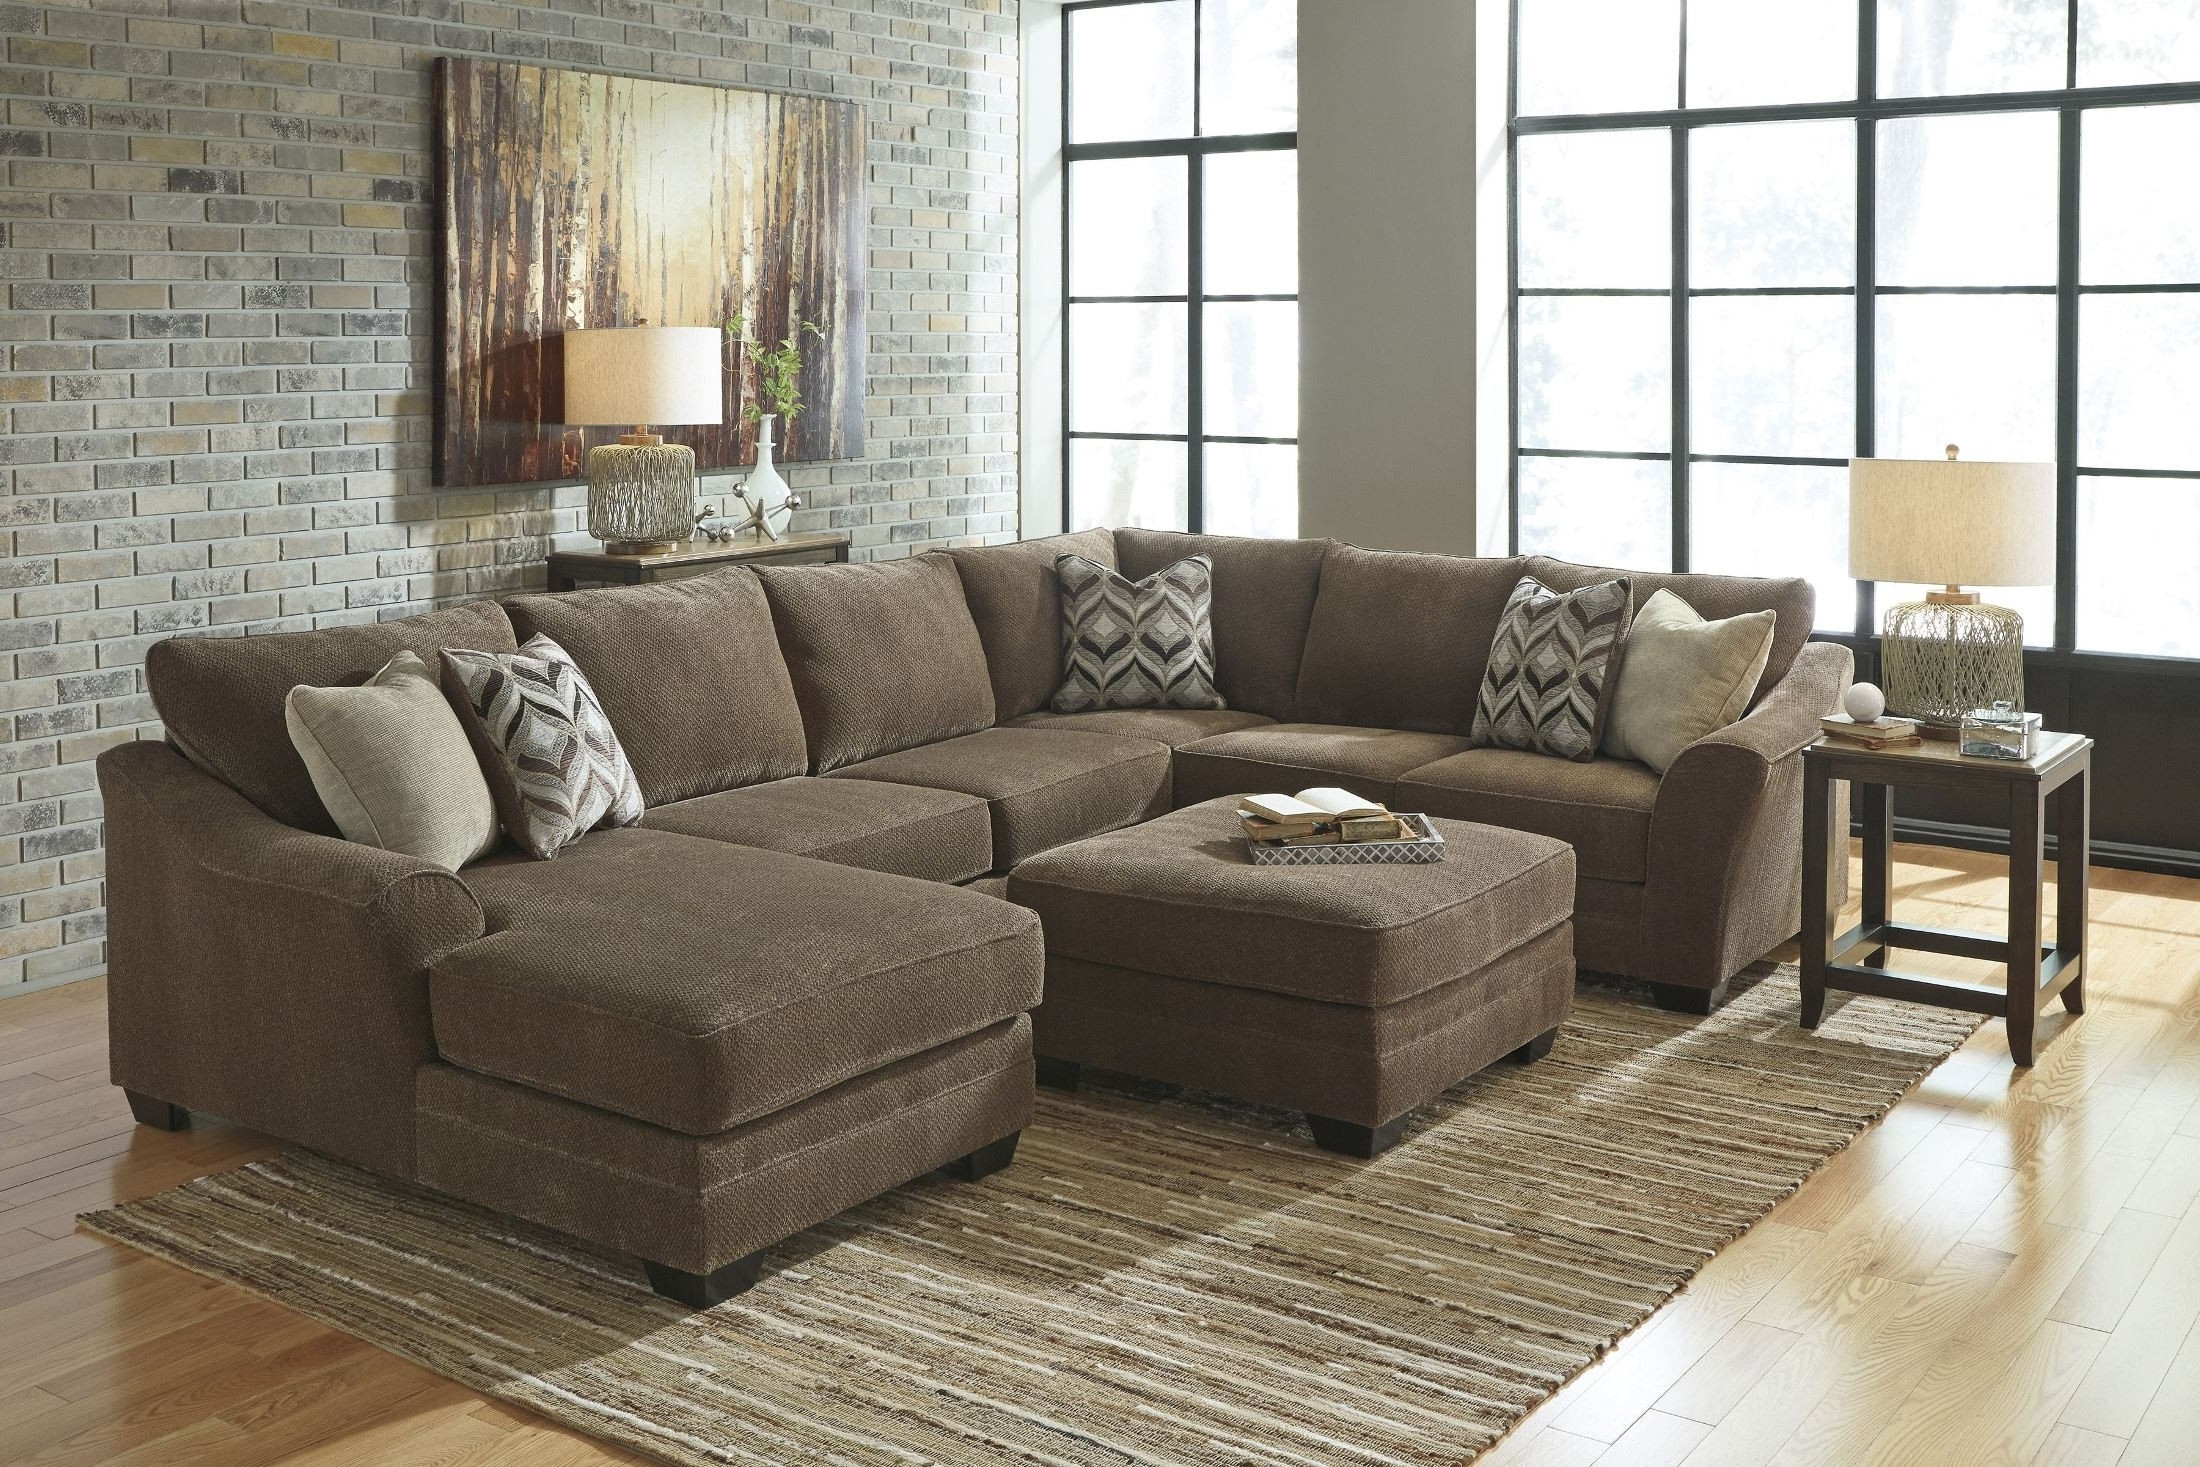 Sectional Couch For Sale (View 17 of 20)